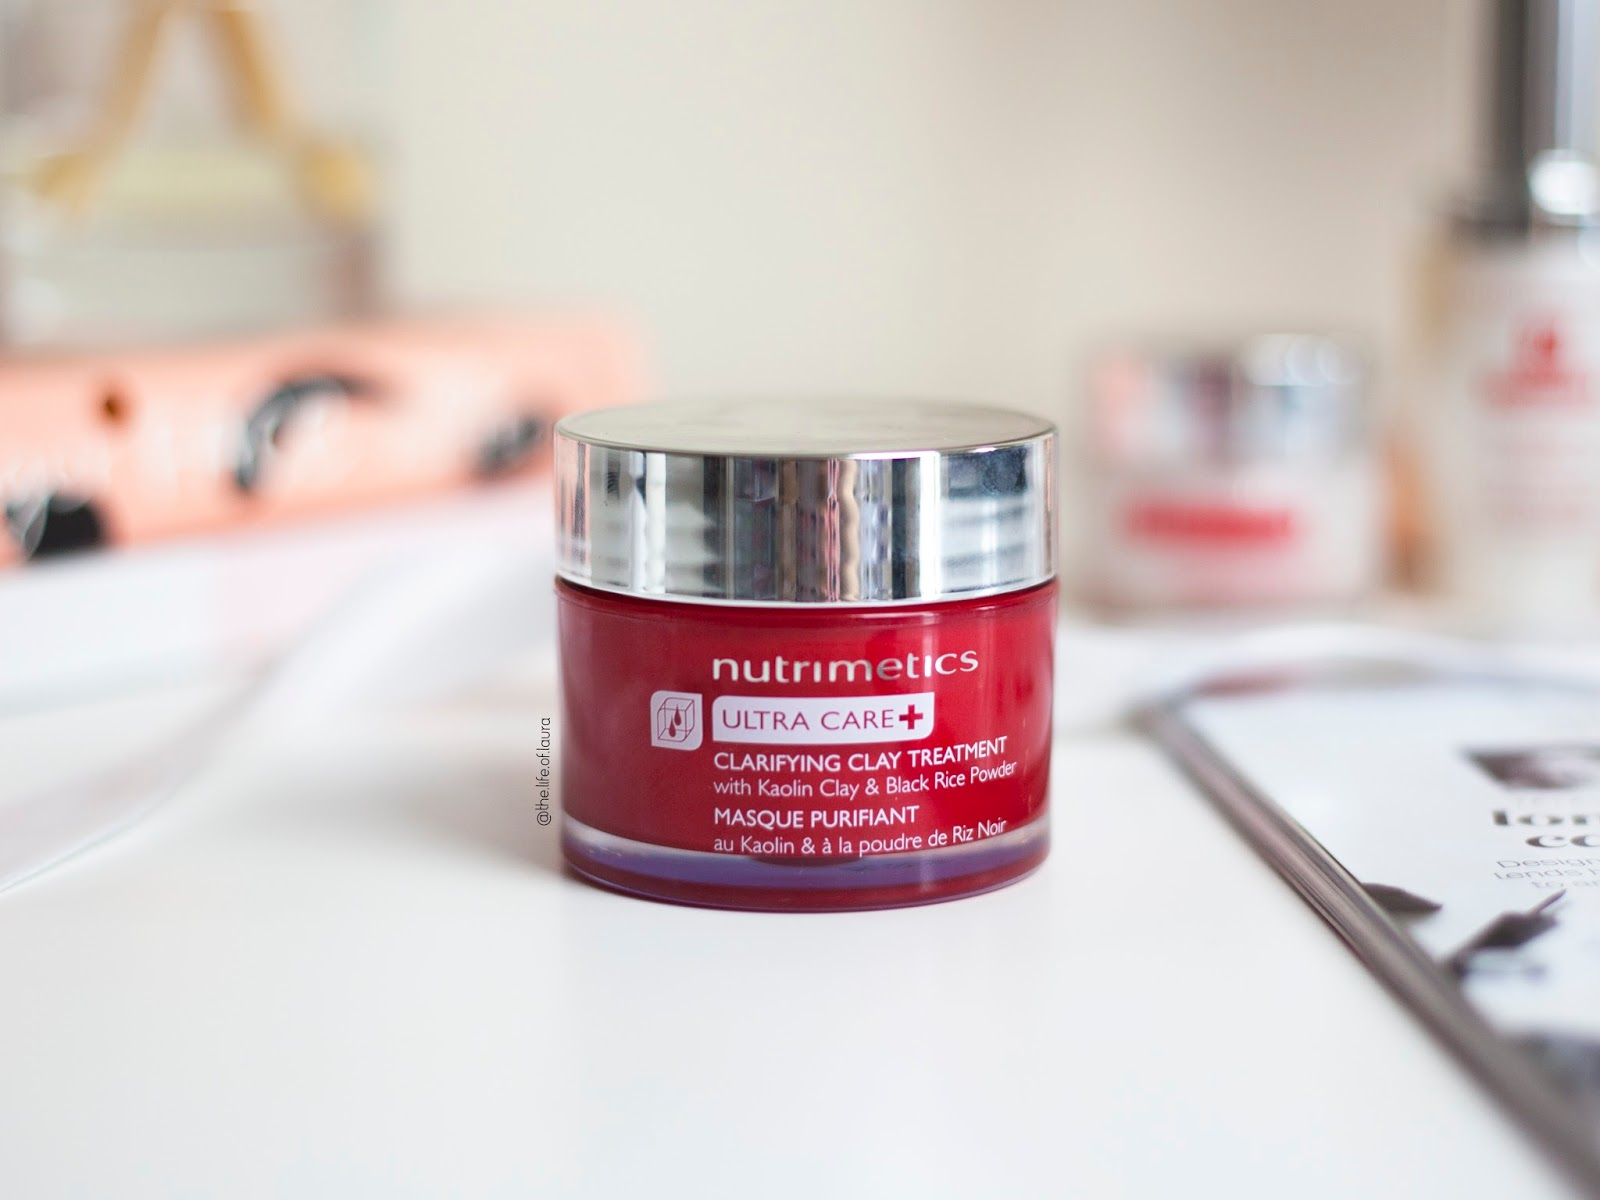 Nutrimetics Ultra Care+ Clarifying Clay Treatment